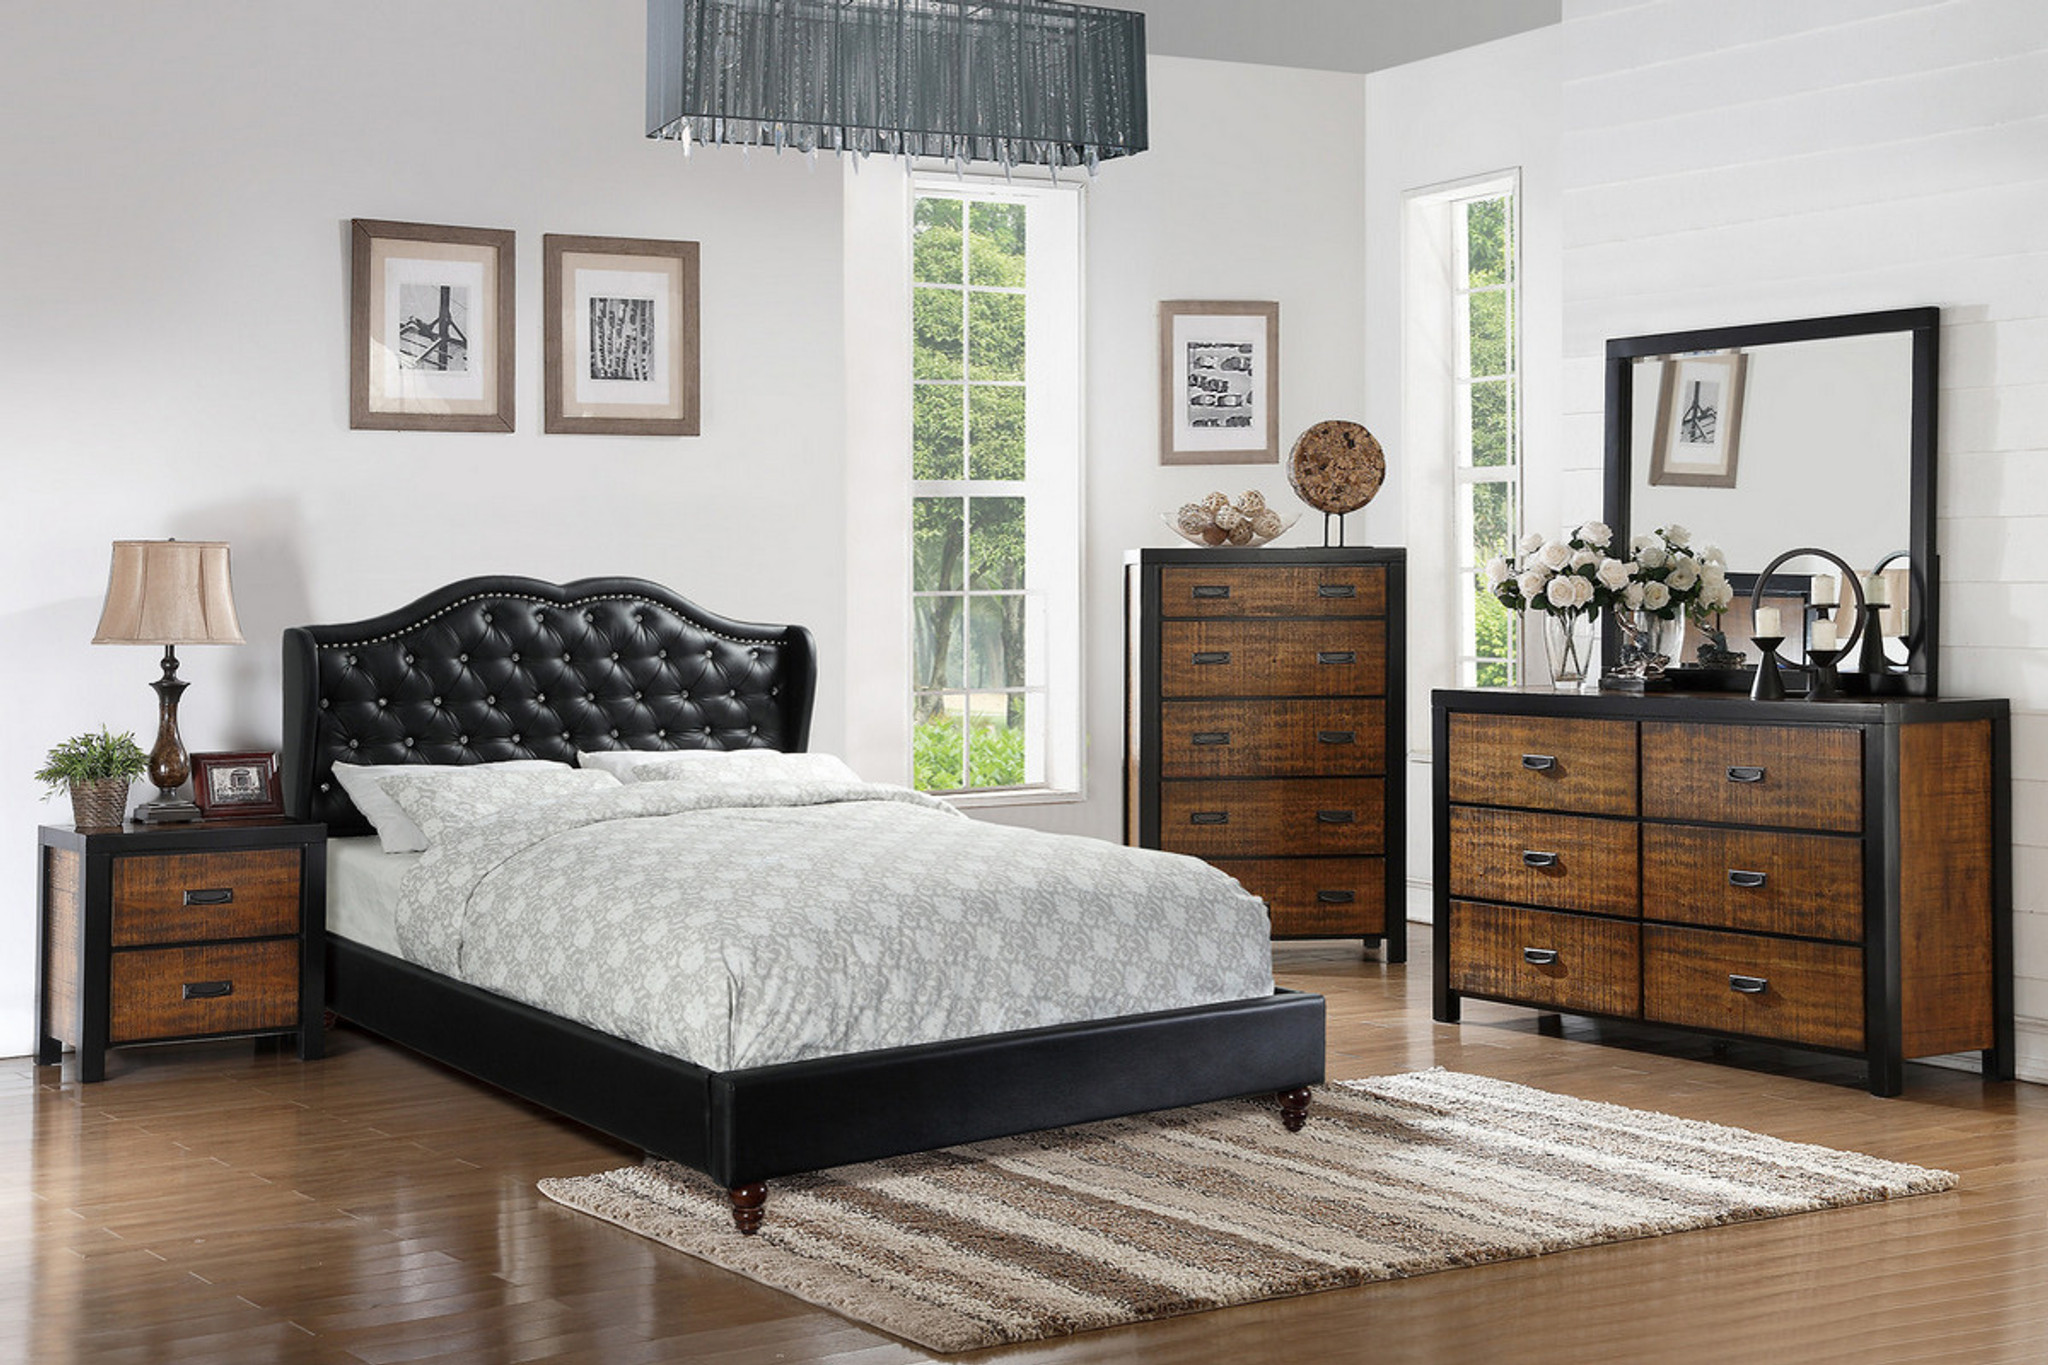 Queen King Bed Black Leather